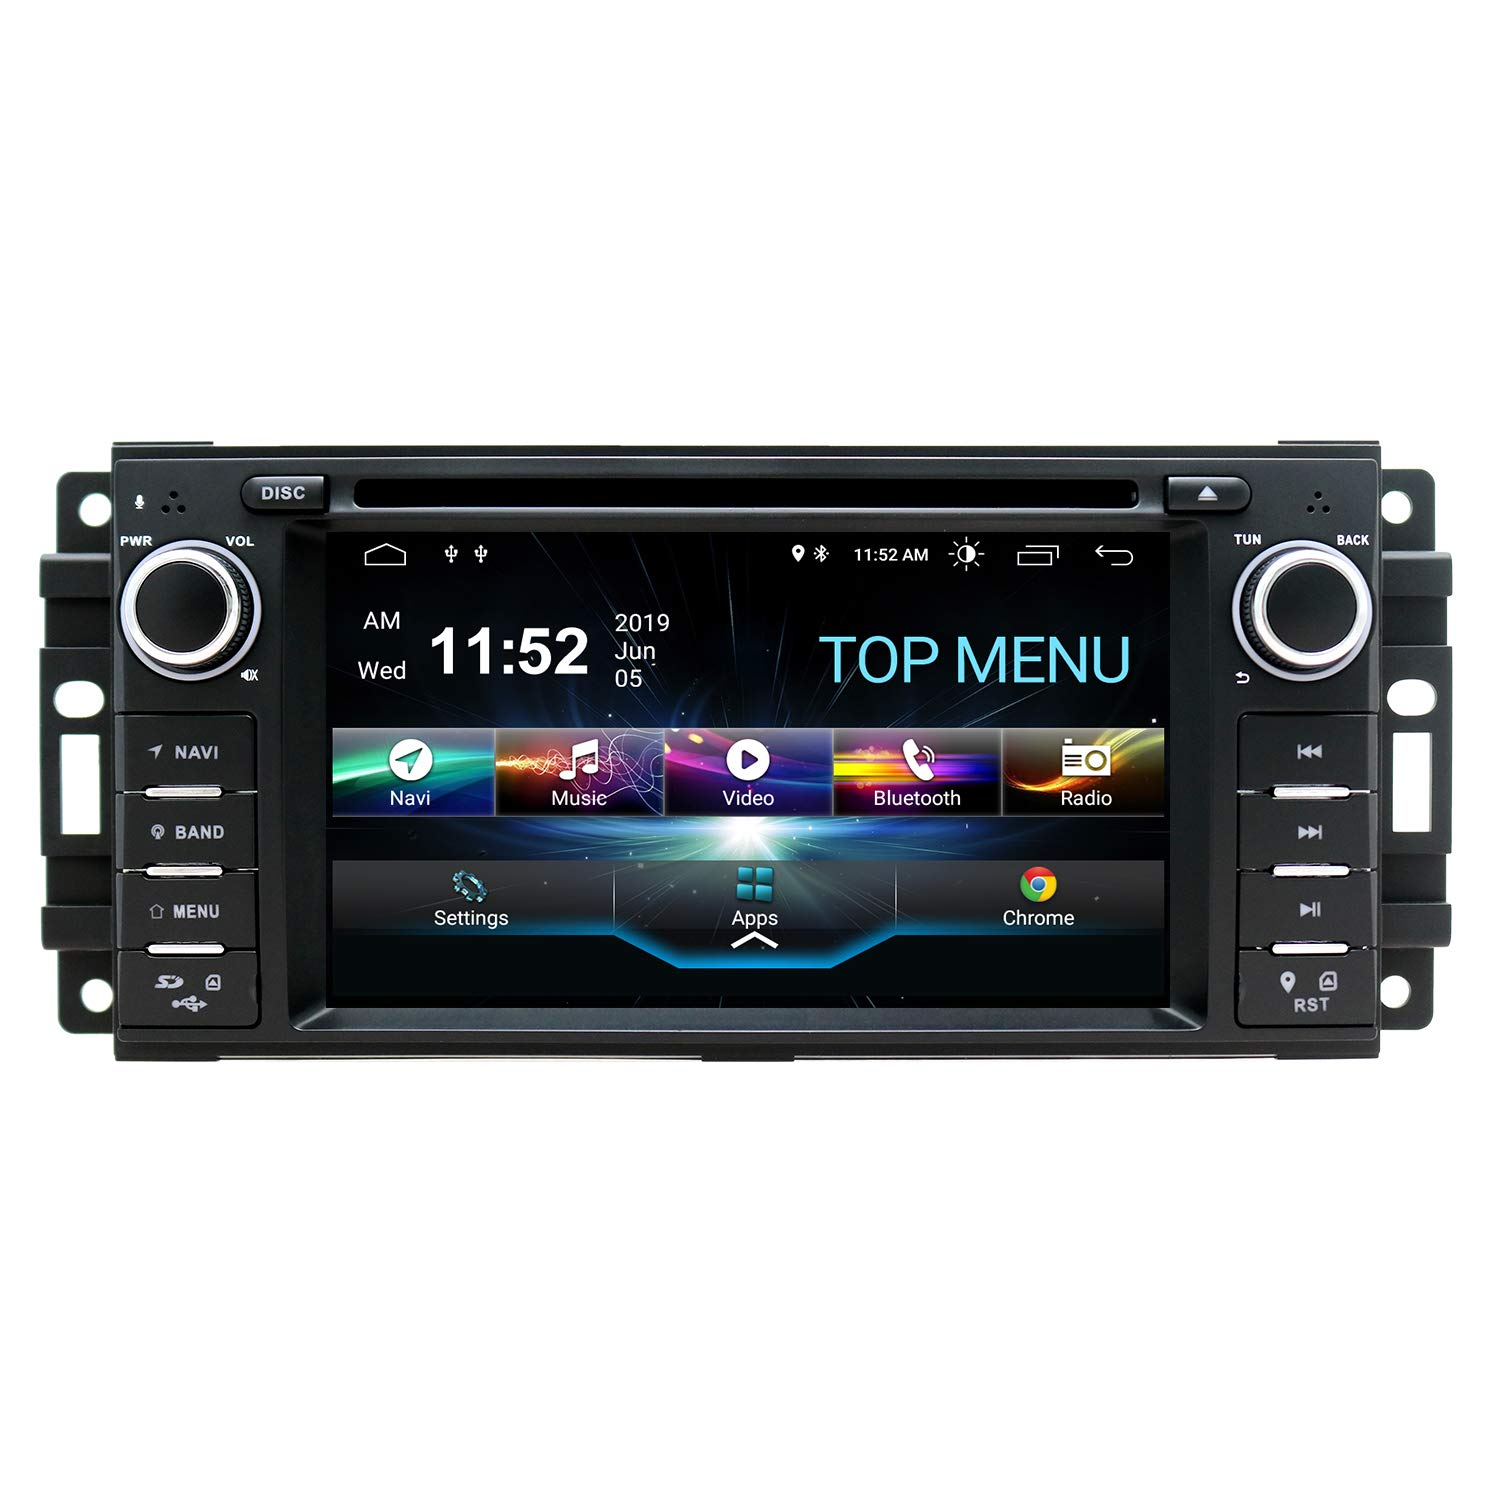 SWTNVIN Android 10 Car Stereo Navigation Fits for Jeep Wrangler Dodge Chrysler 2GB RAM 32GB ROM LD Touch Screen Multimedia Indash DVD Player support GPS Bluetooth Wifi teering wheel with Backup Camera